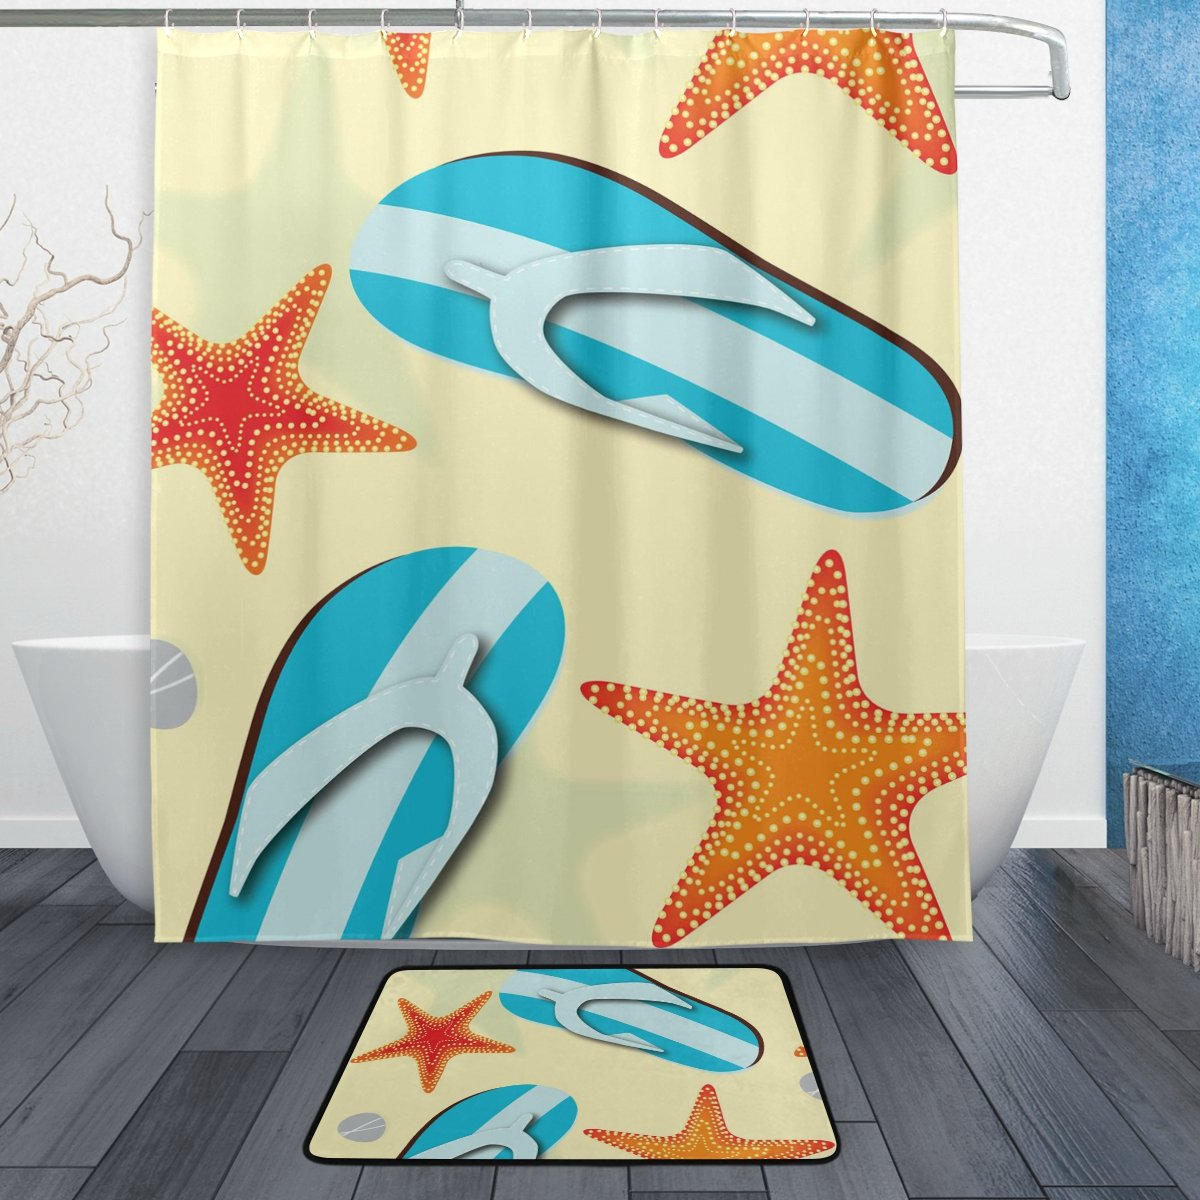 BAIHUISHOP Yellow Beach Starfish Flip Flop PatternMachine Washable for Everyday Use,Includes 60x72 Inch Waterproof Shower Curtain, 12 Shower Hooks and 1 Non-slip Bathroom Rug Carpet by baihuishop